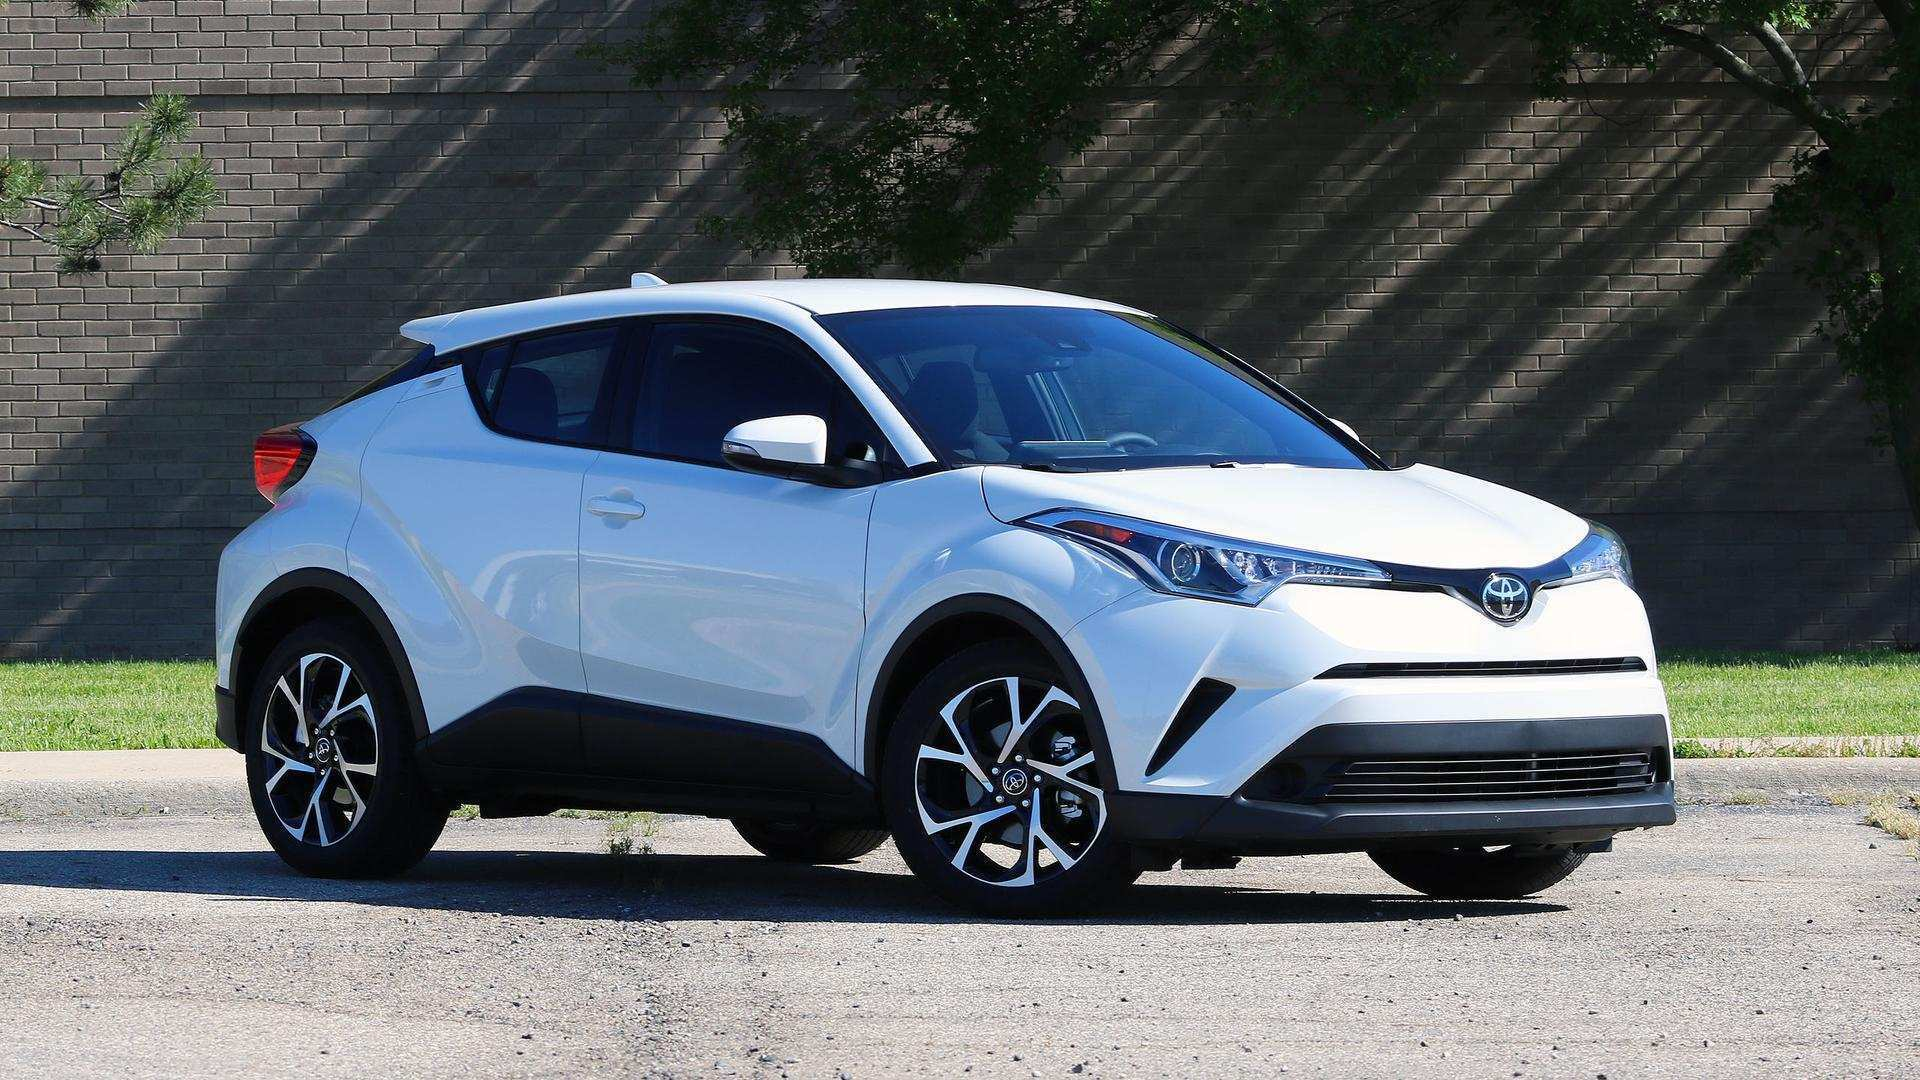 98 Best Review 2019 Toyota C Hr Exterior with 2019 Toyota C Hr